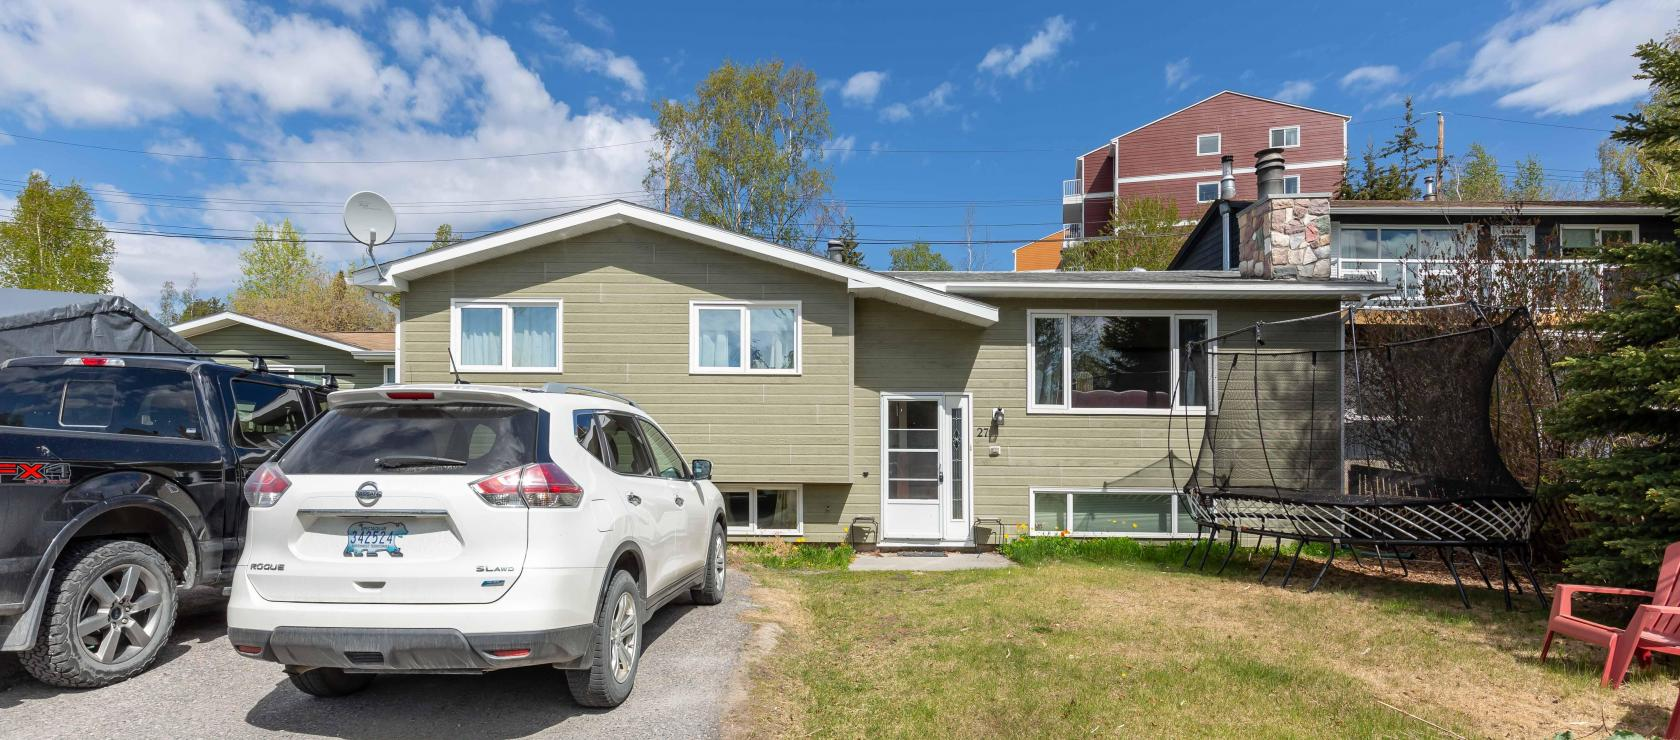 27 Rycon Drive, Downtown, Yellowknife 2